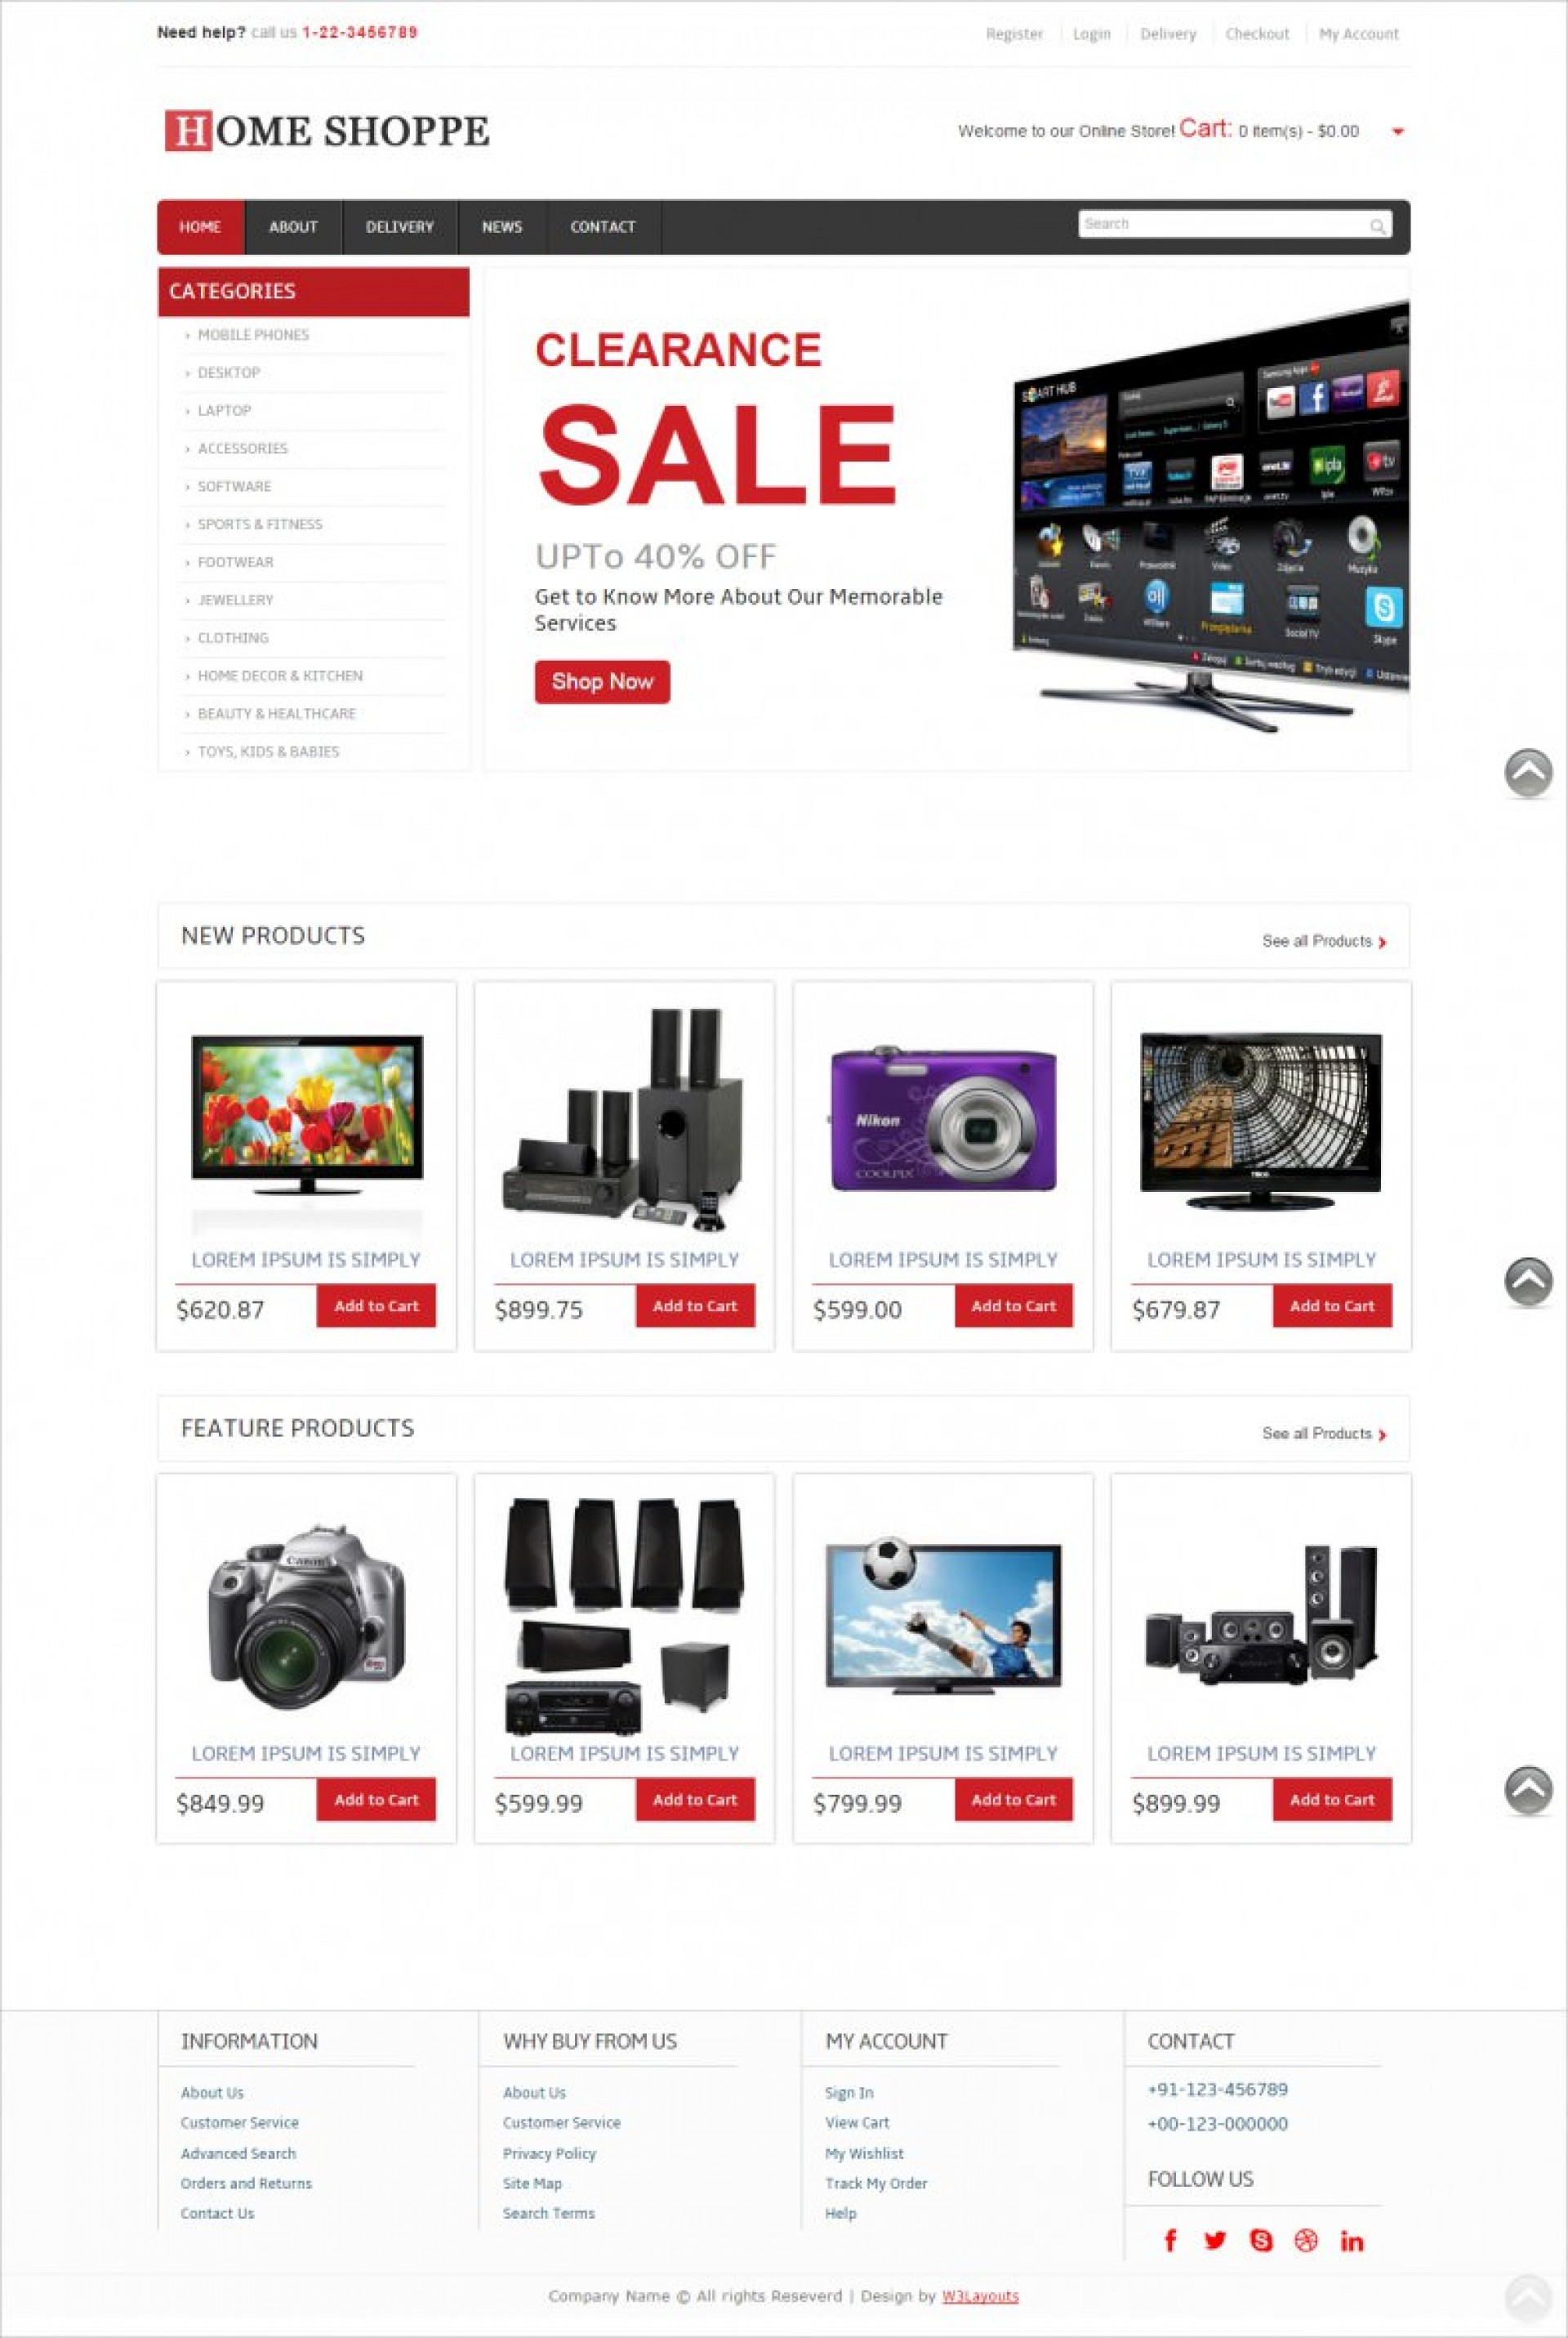 008 Shocking Free E Commerce Website Template Sample  Ecommerce Html Cs Bootstrap Php1920